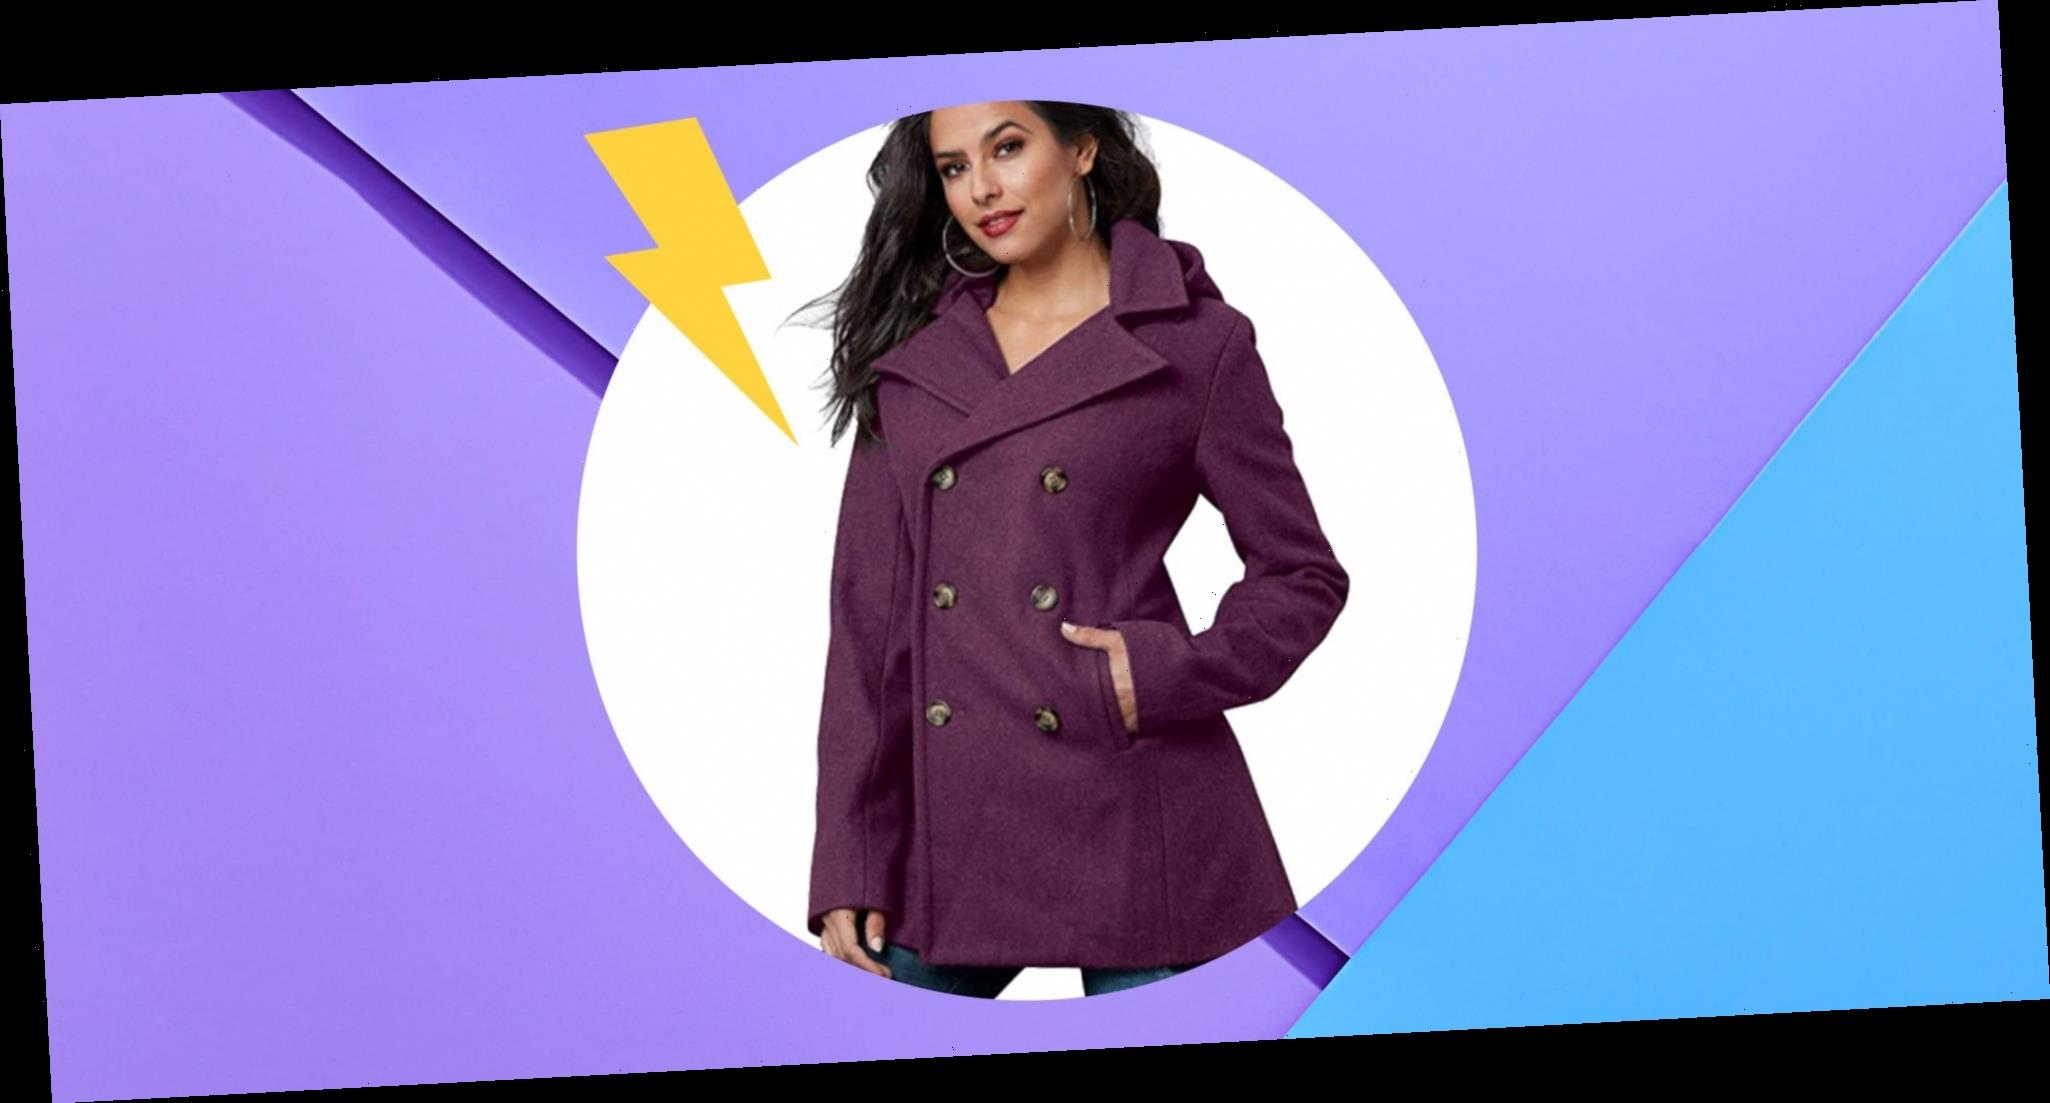 Where To Get A Purple Coat Like The Ones You Saw On Inauguration Day